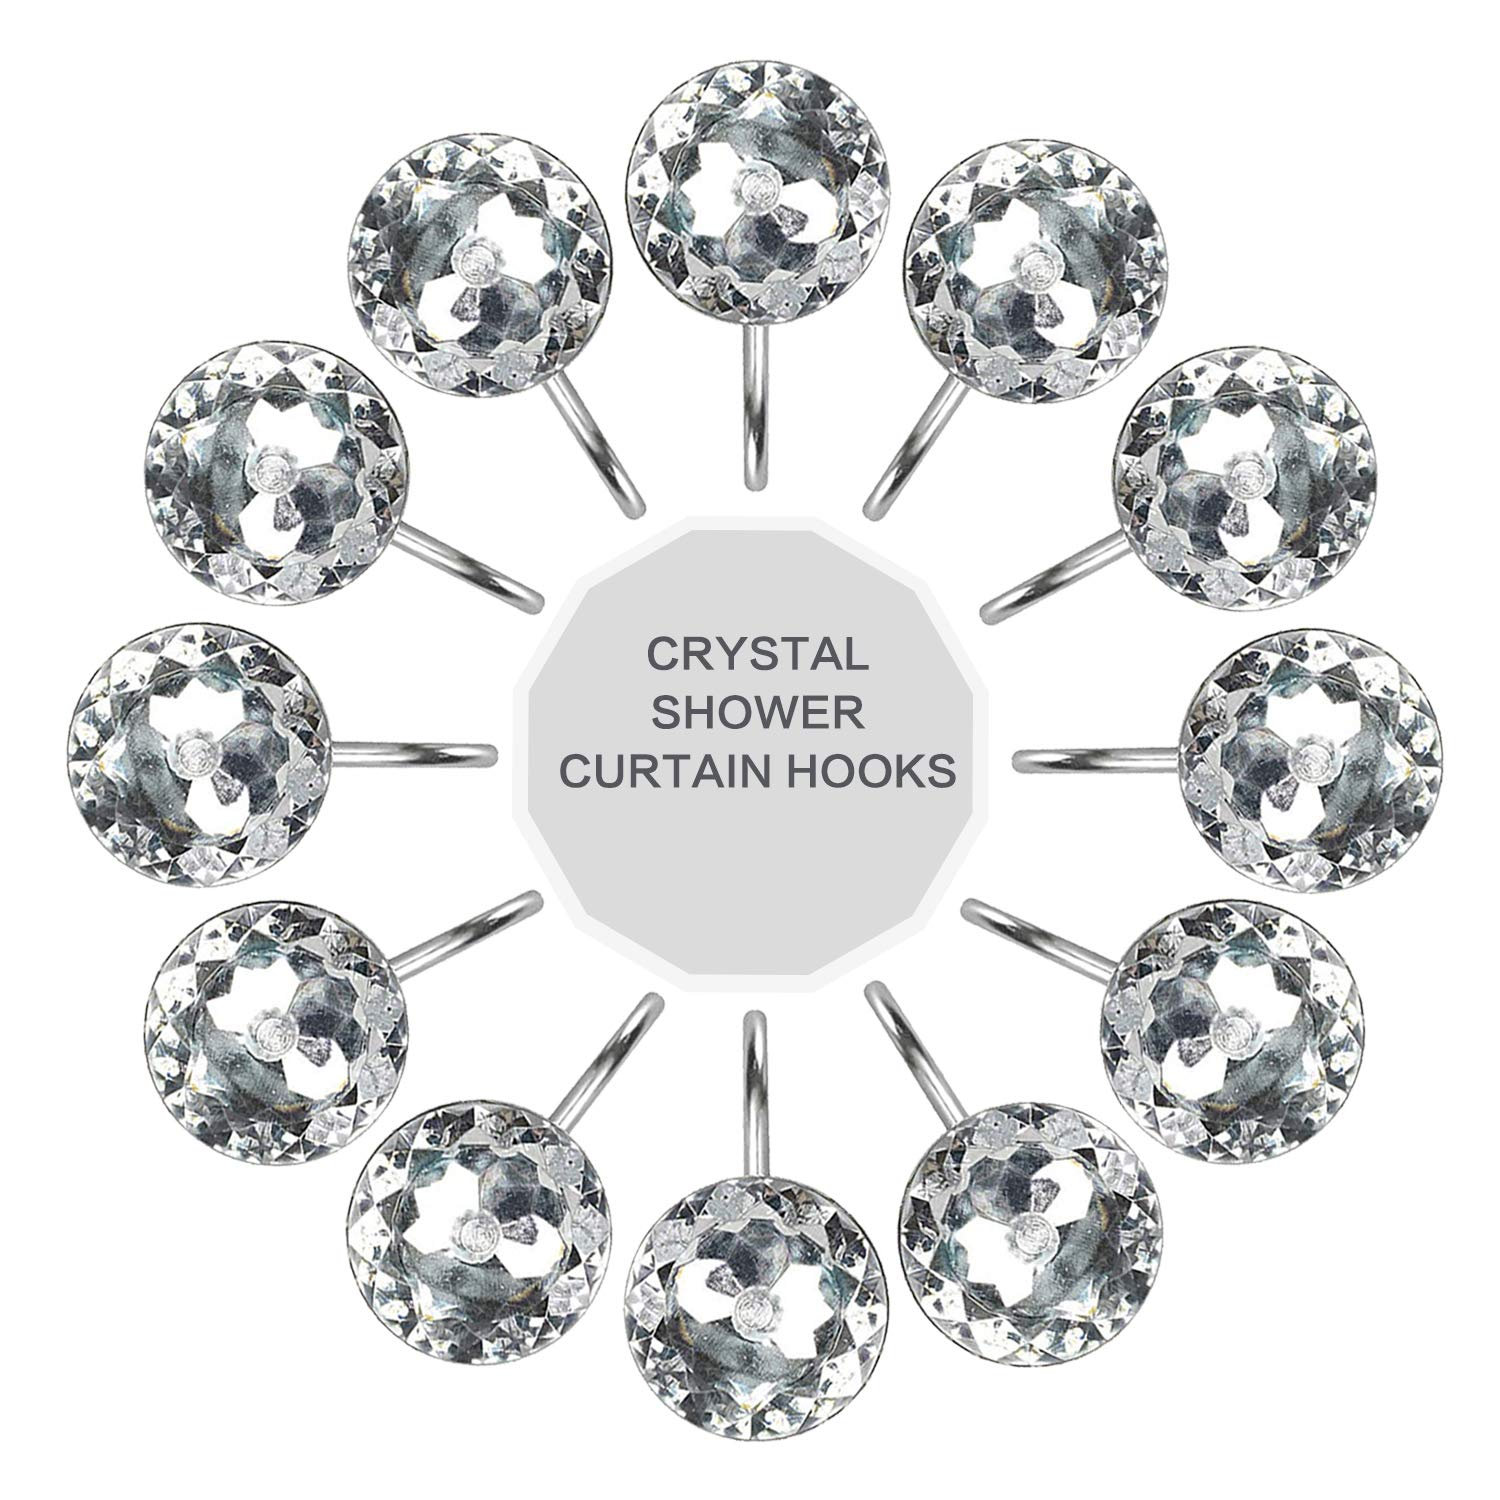 Walfront Shower Curtain Hooks 12pcs Clear Decorative